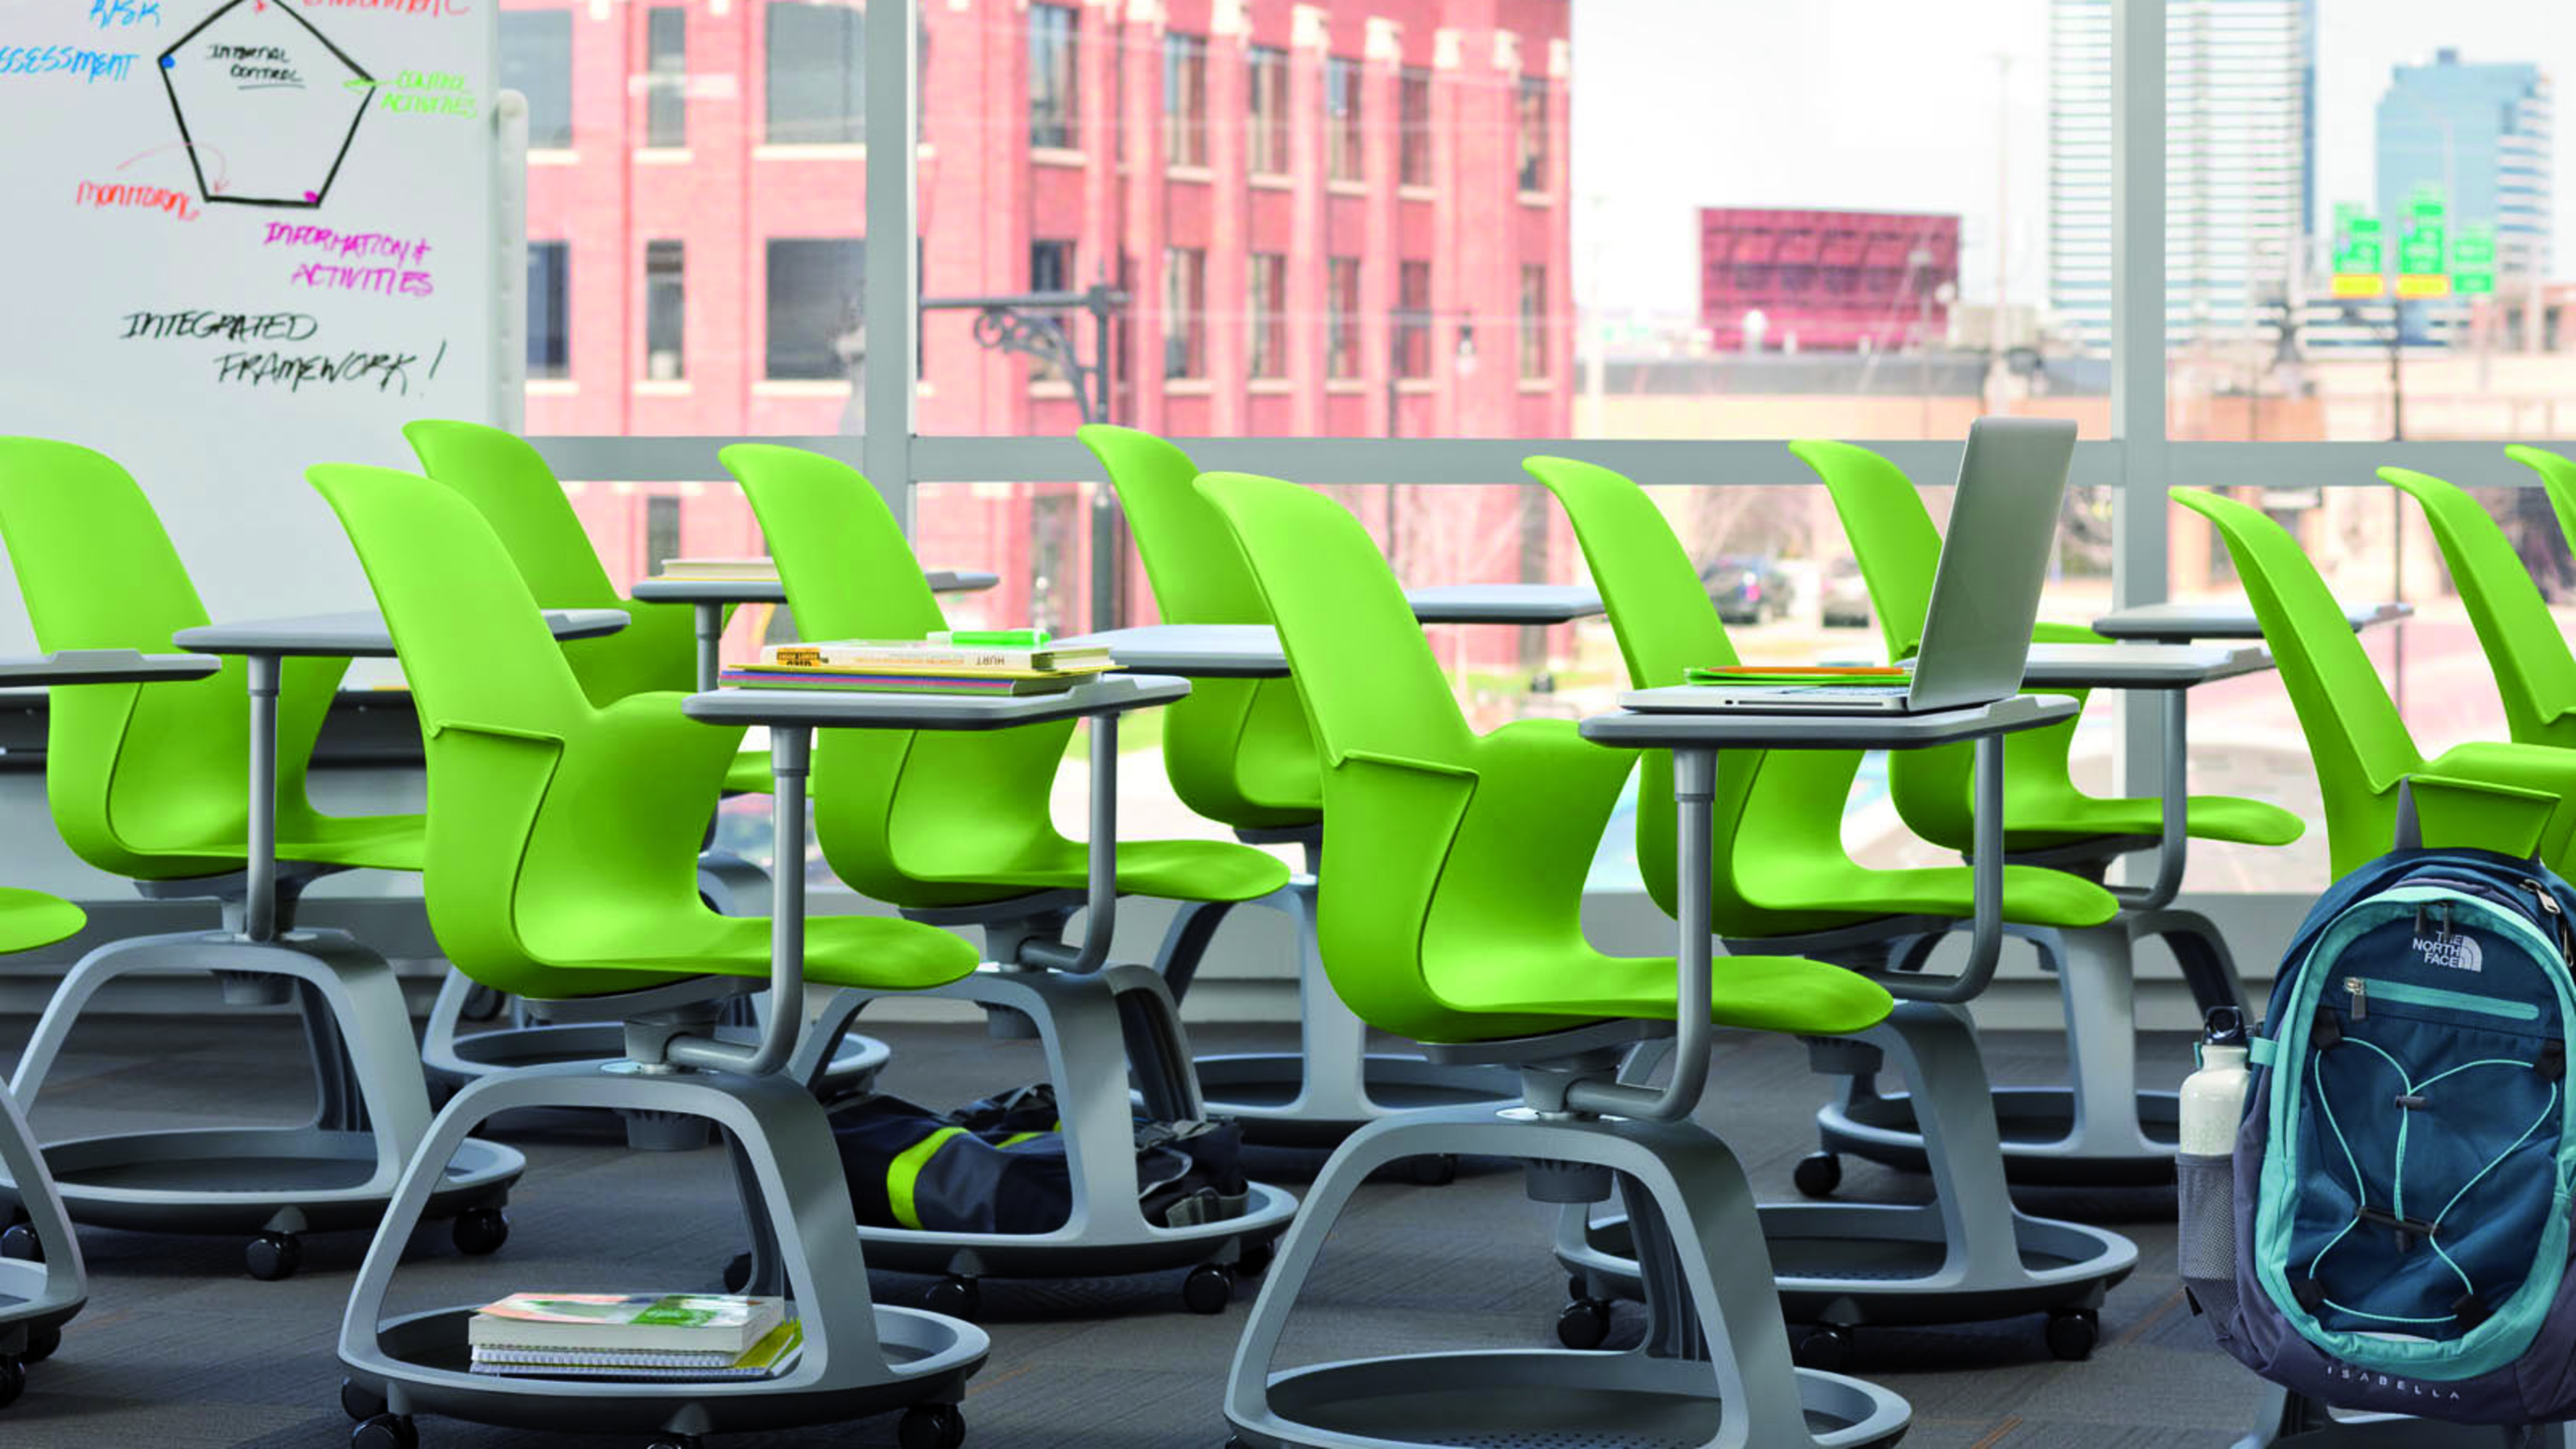 Collaborative Classroom Writing ~ Node classroom chairs for active learning steelcase